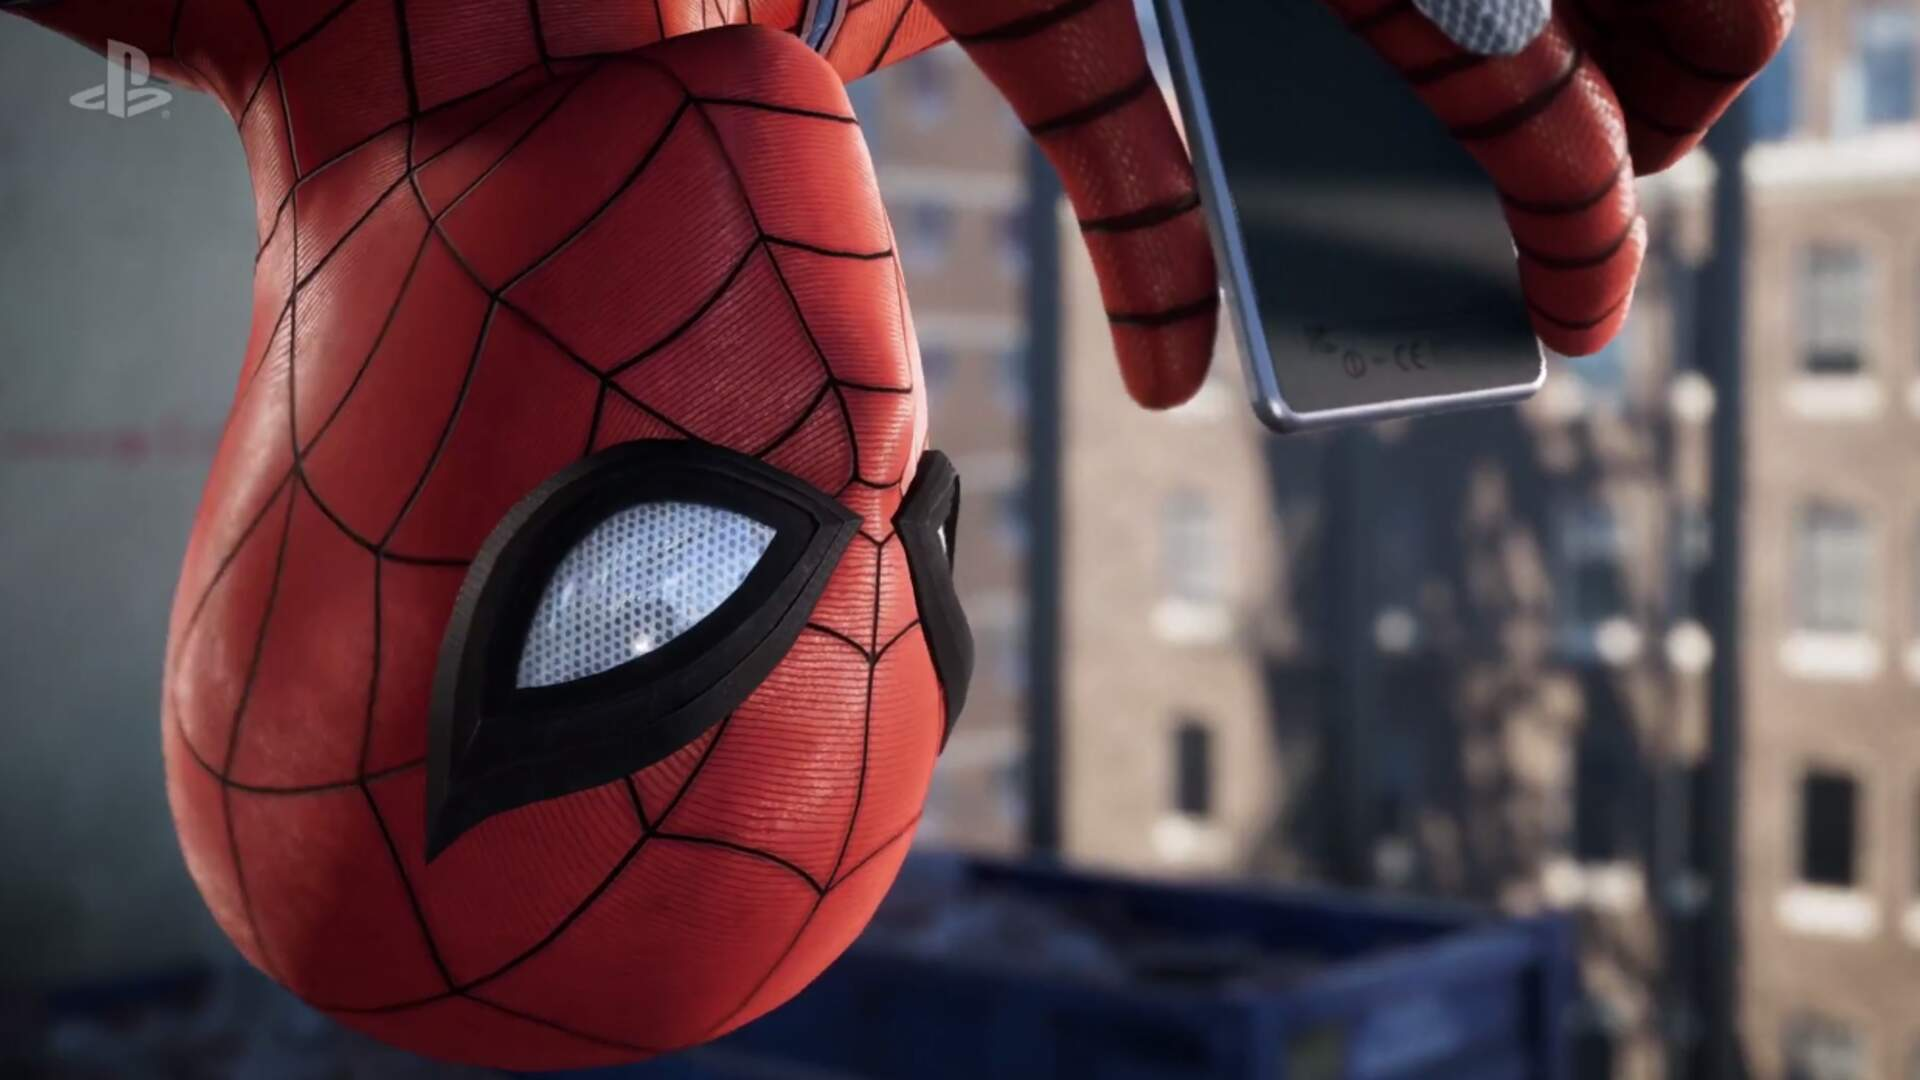 Insomniac's Spider-Man Teases Miles Morales, Game Out in 2018